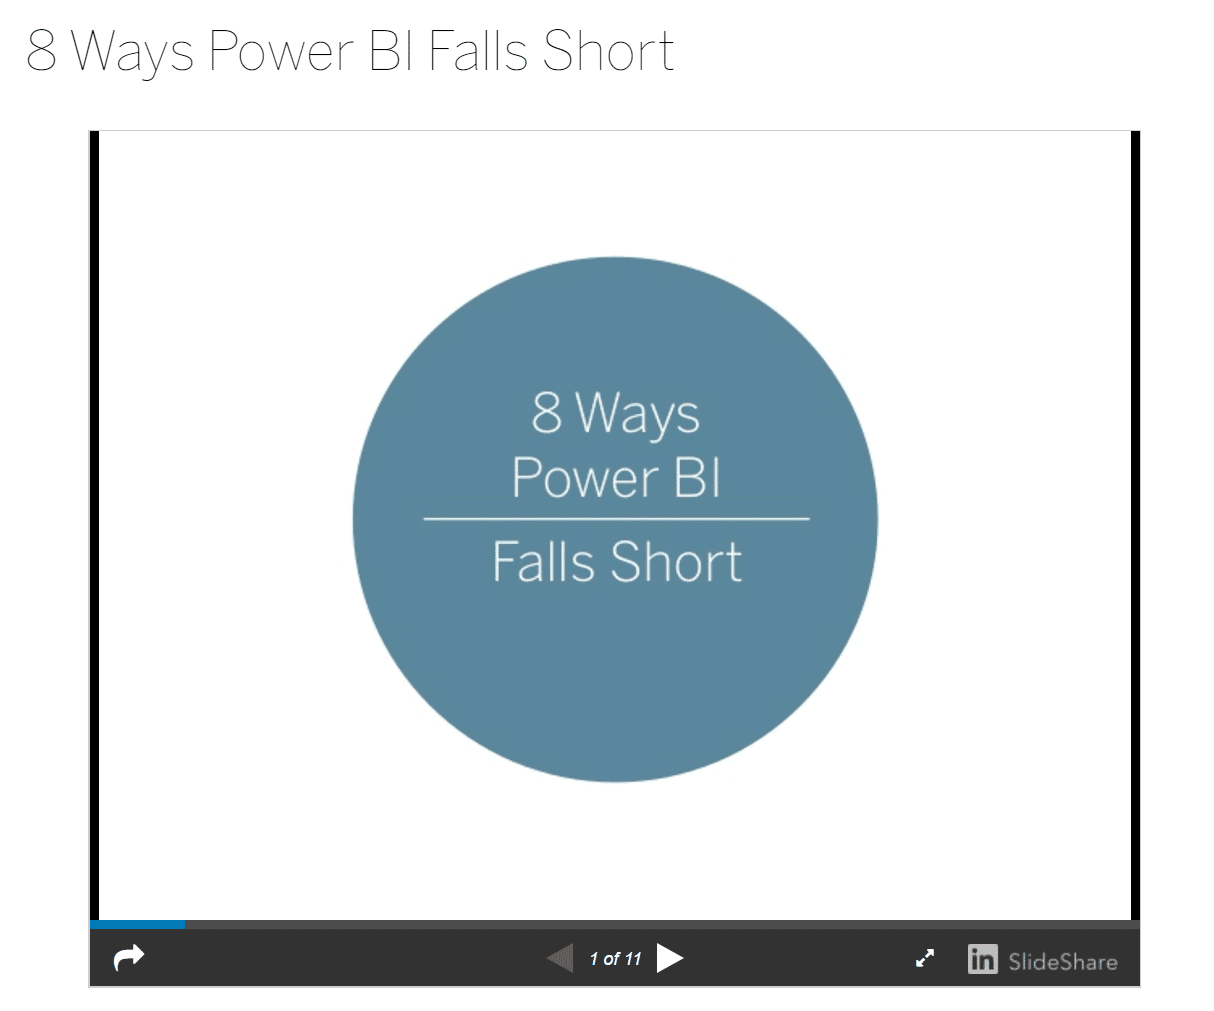 8 Ways Power BI Falls Short - Not